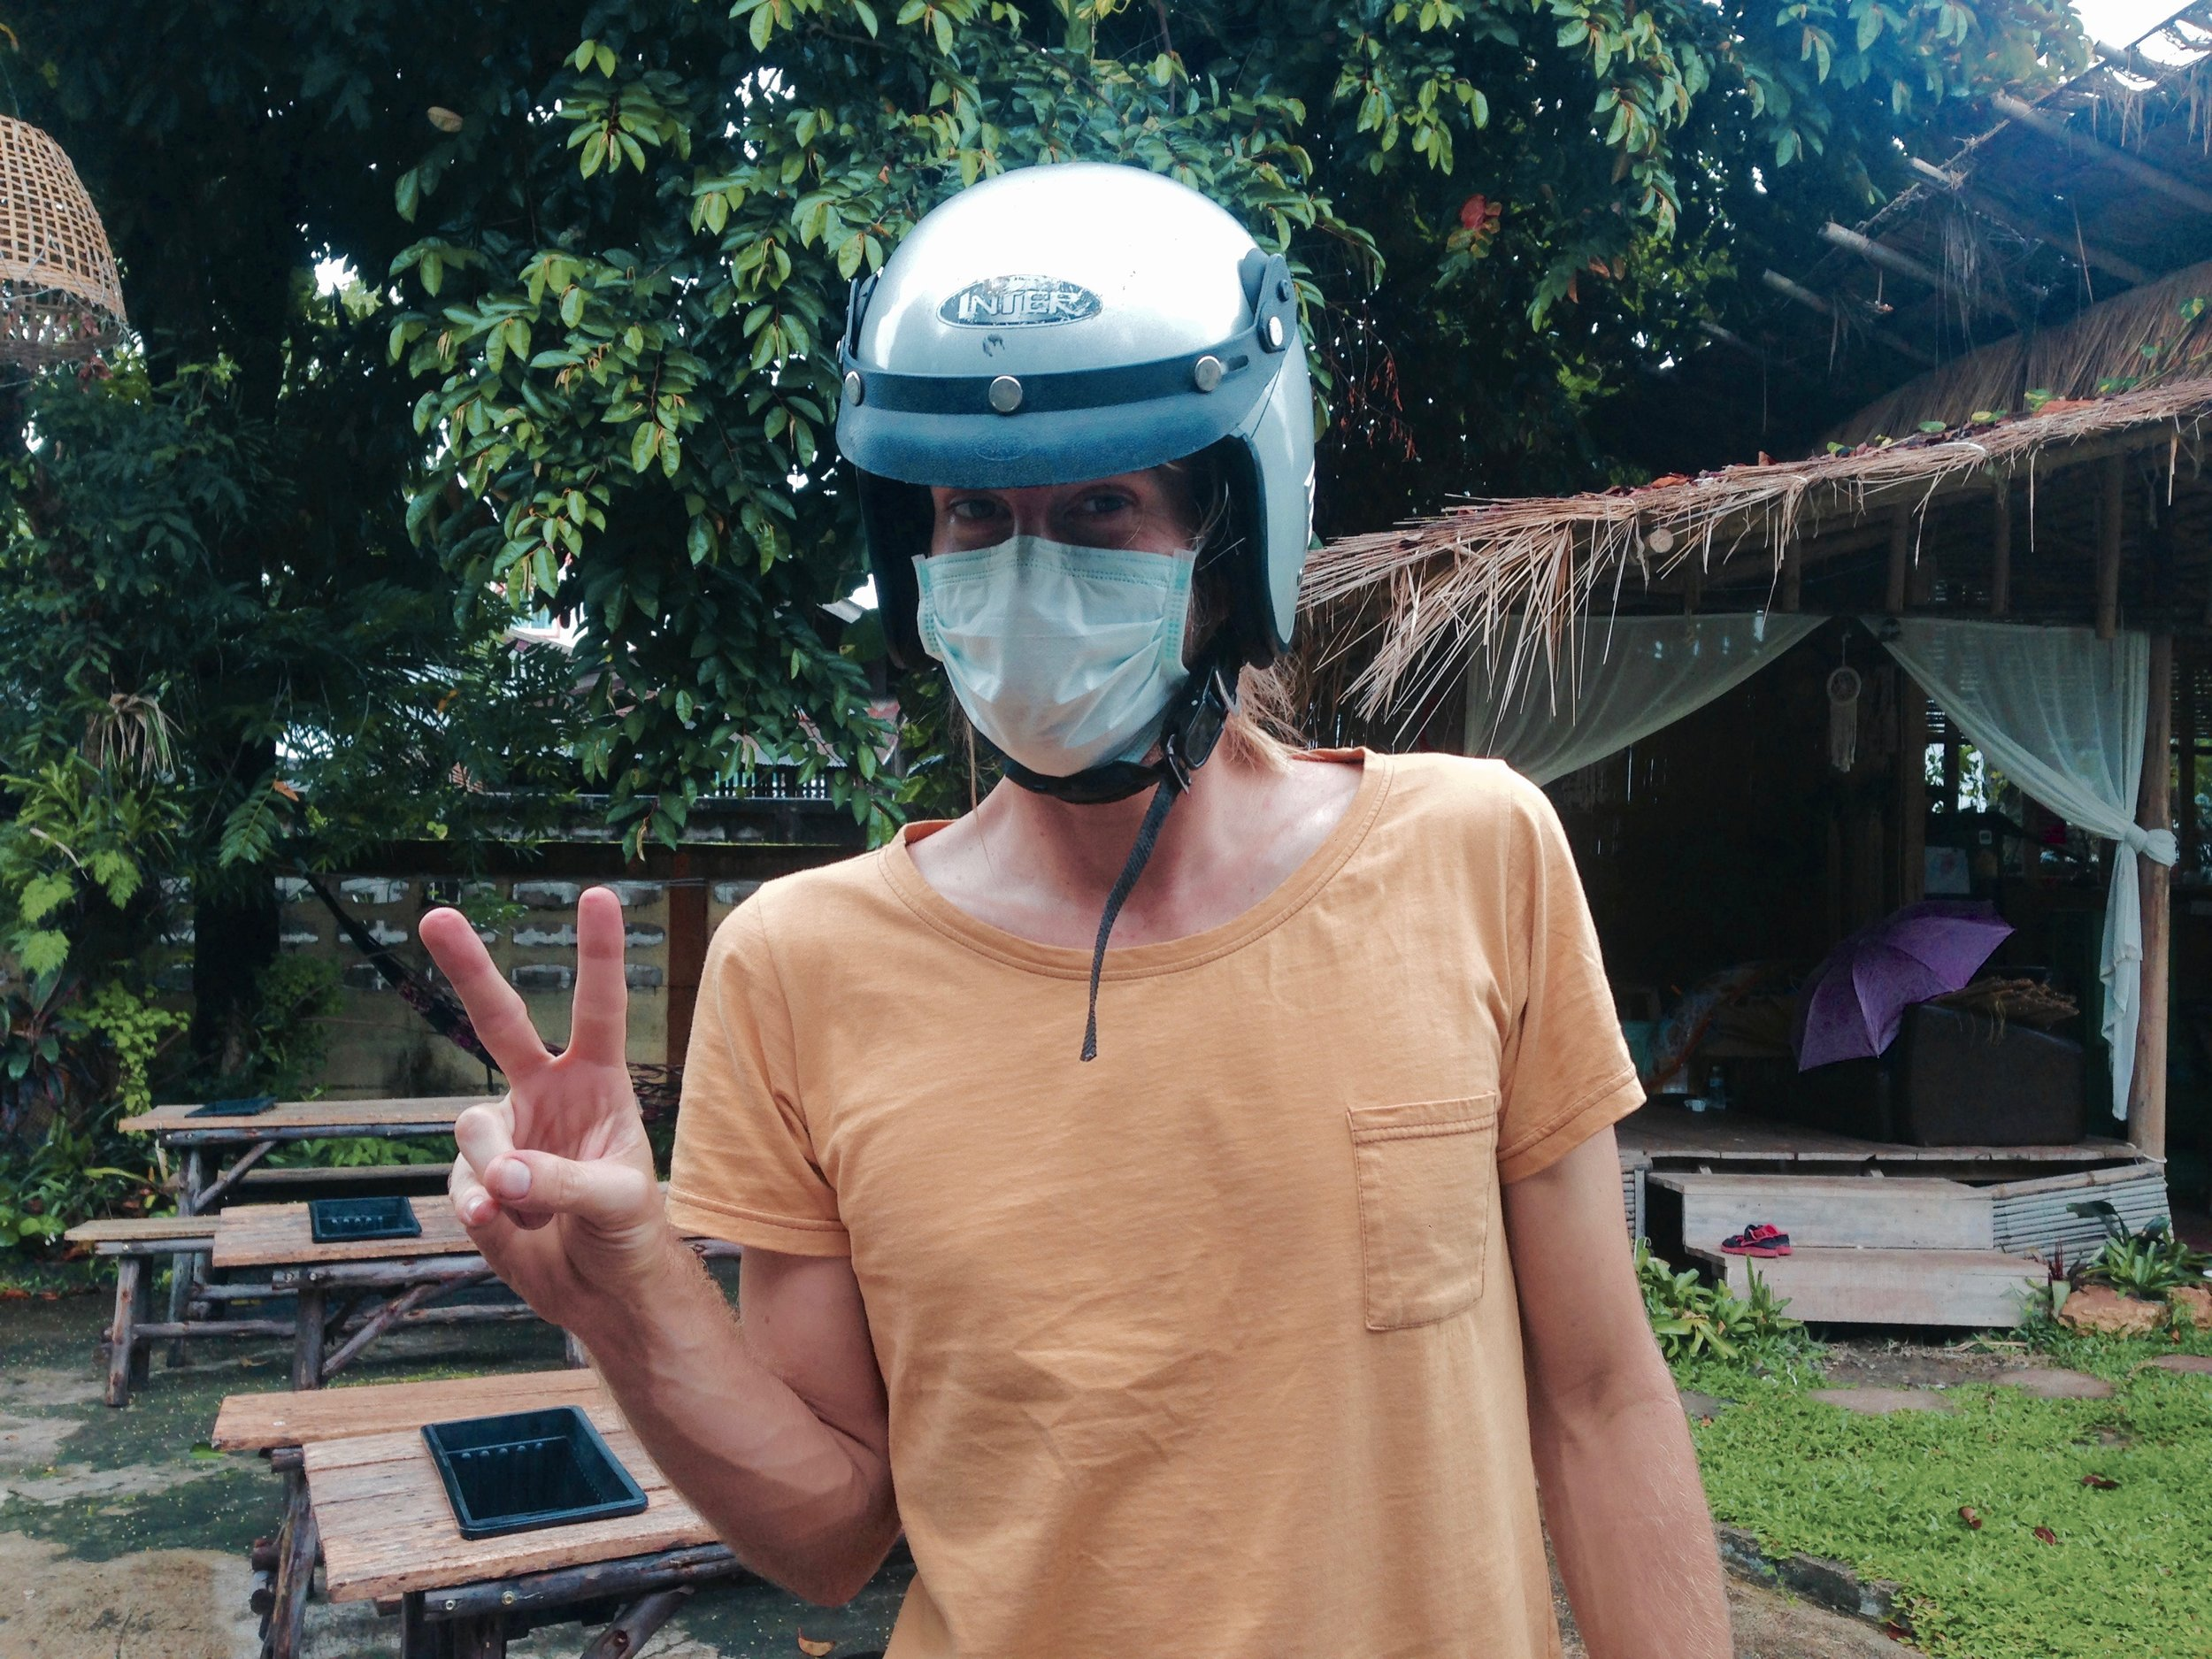 Lesson for us all: when motorbiking on a highway from Chiang Rai to Myanmar, and back, always ALWAYS wear protection. And throw up them peace signs for added coolness.